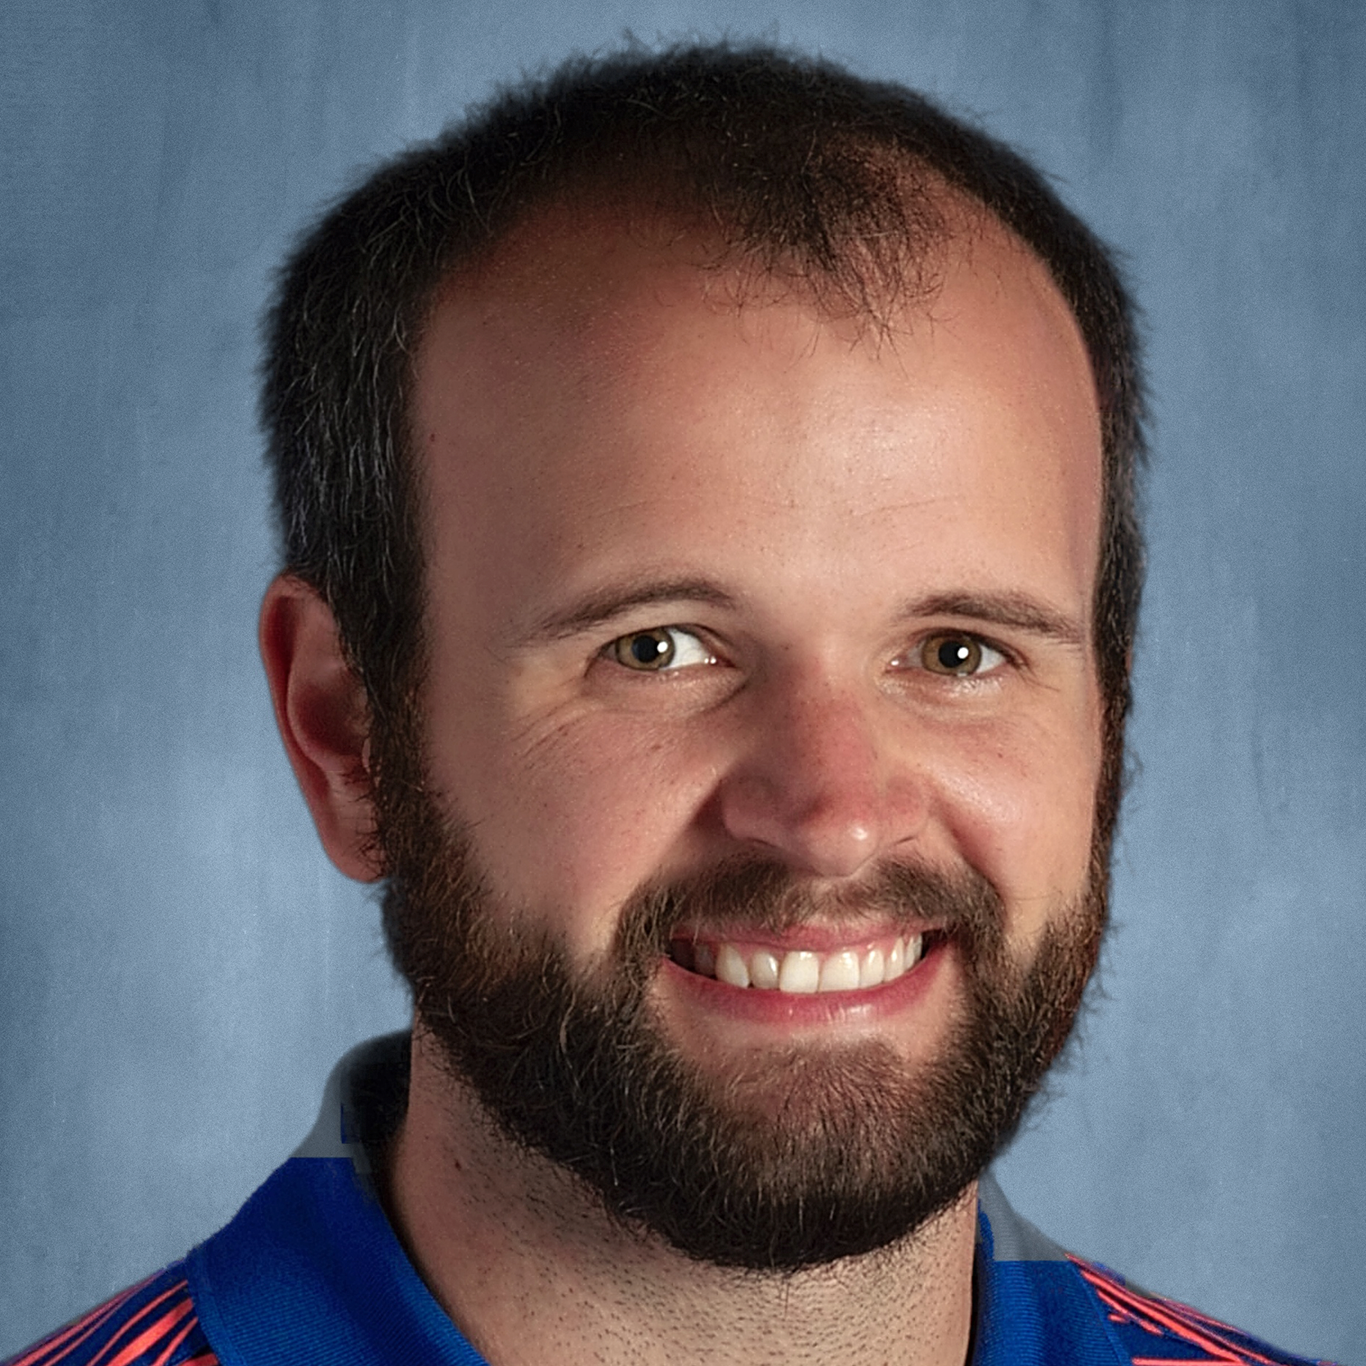 Adam Brown teaches kindergarten at Lakeside Elementary in Pittsburg, KS. He also assists with after-school programs and summer camps. Adam is most passionate about providing hands-on learning for his students and building relationships with them. He's a past USD 250 Rising Star Award winner and a Crawford County Educator of the Year nominee. Adam is a big advocate for project-based learning (PBL) and hopes to use his previous PBL experience to bring PBL opportunities to his kindergarten students.